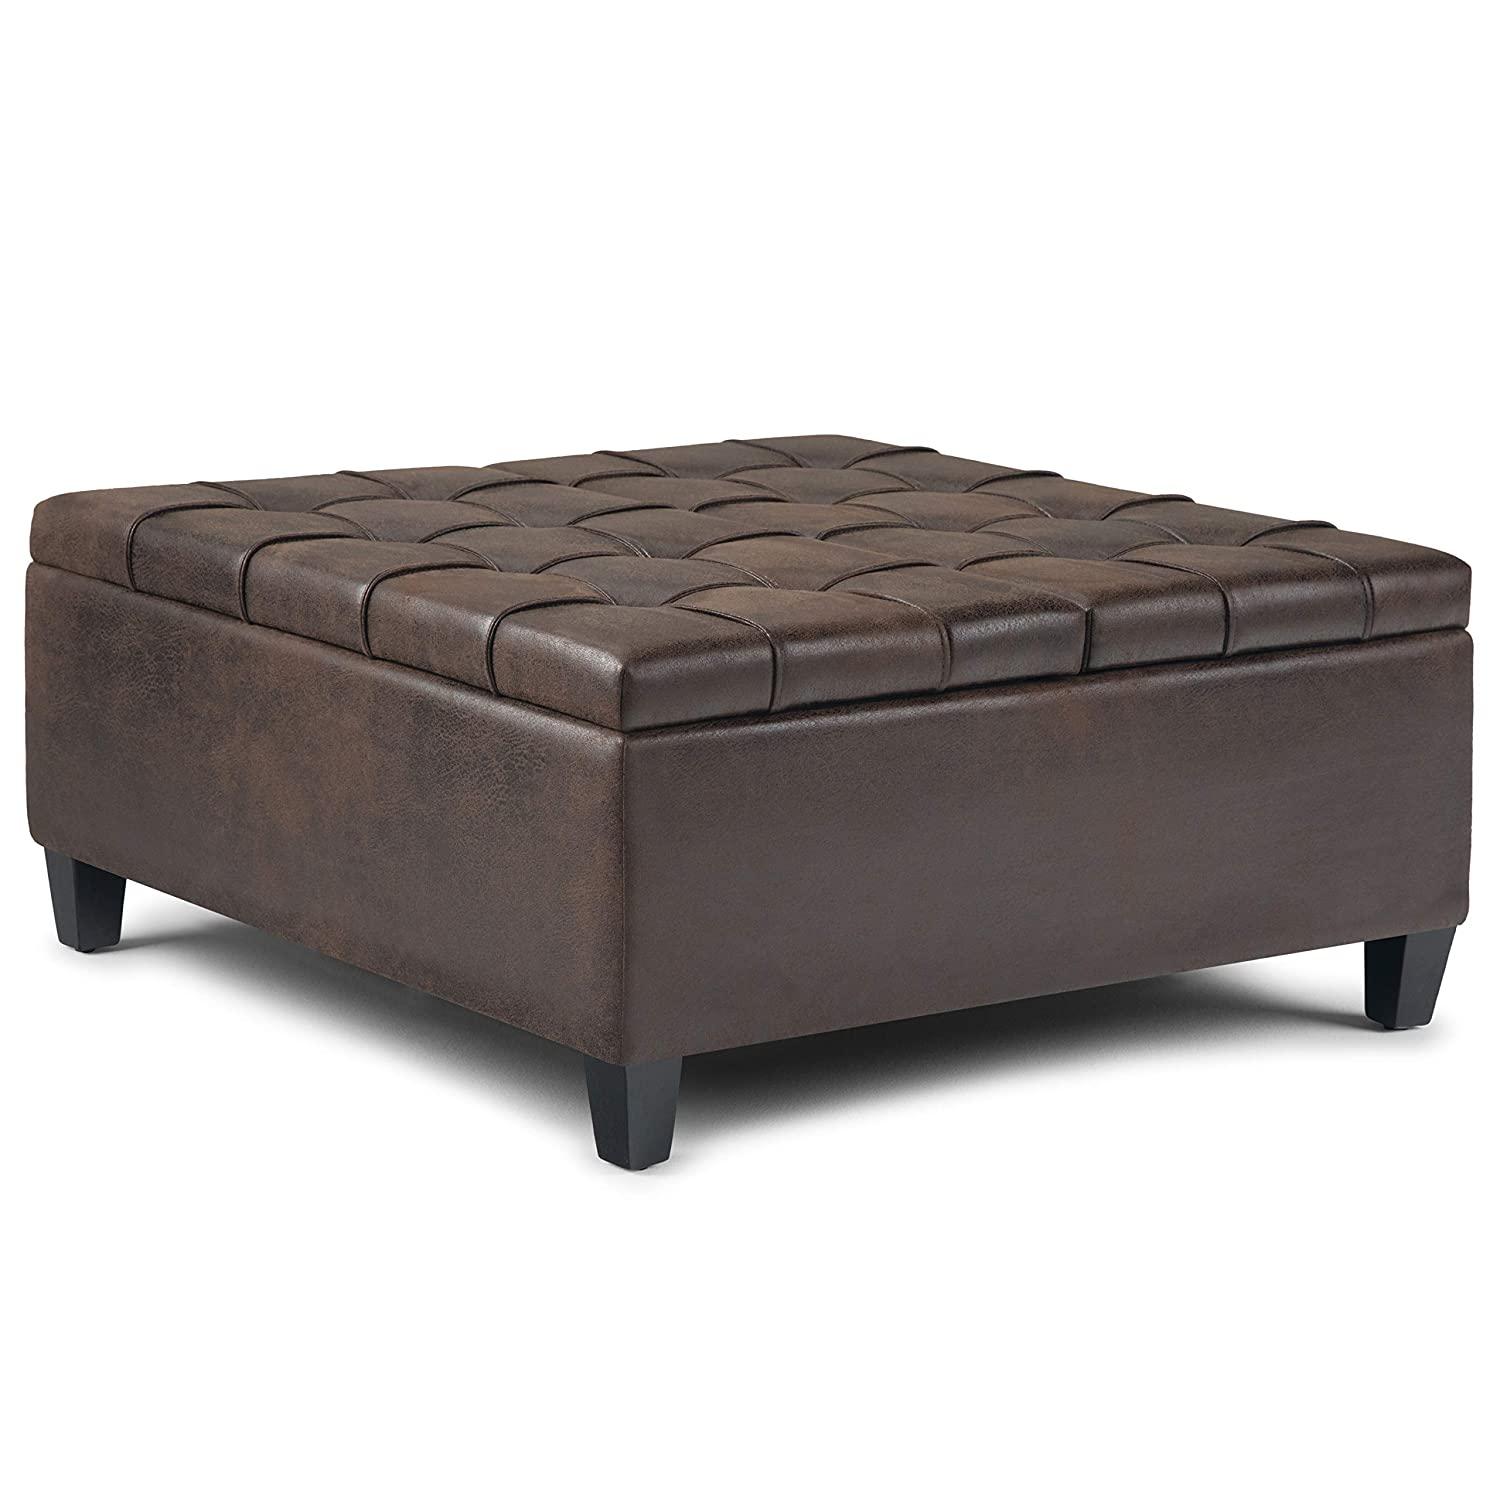 Simpli Home AXCOT-265-DBR Harrison 36 inch Wide Traditional Square Storage Ottoman in Distressed Brown Faux Air Leather